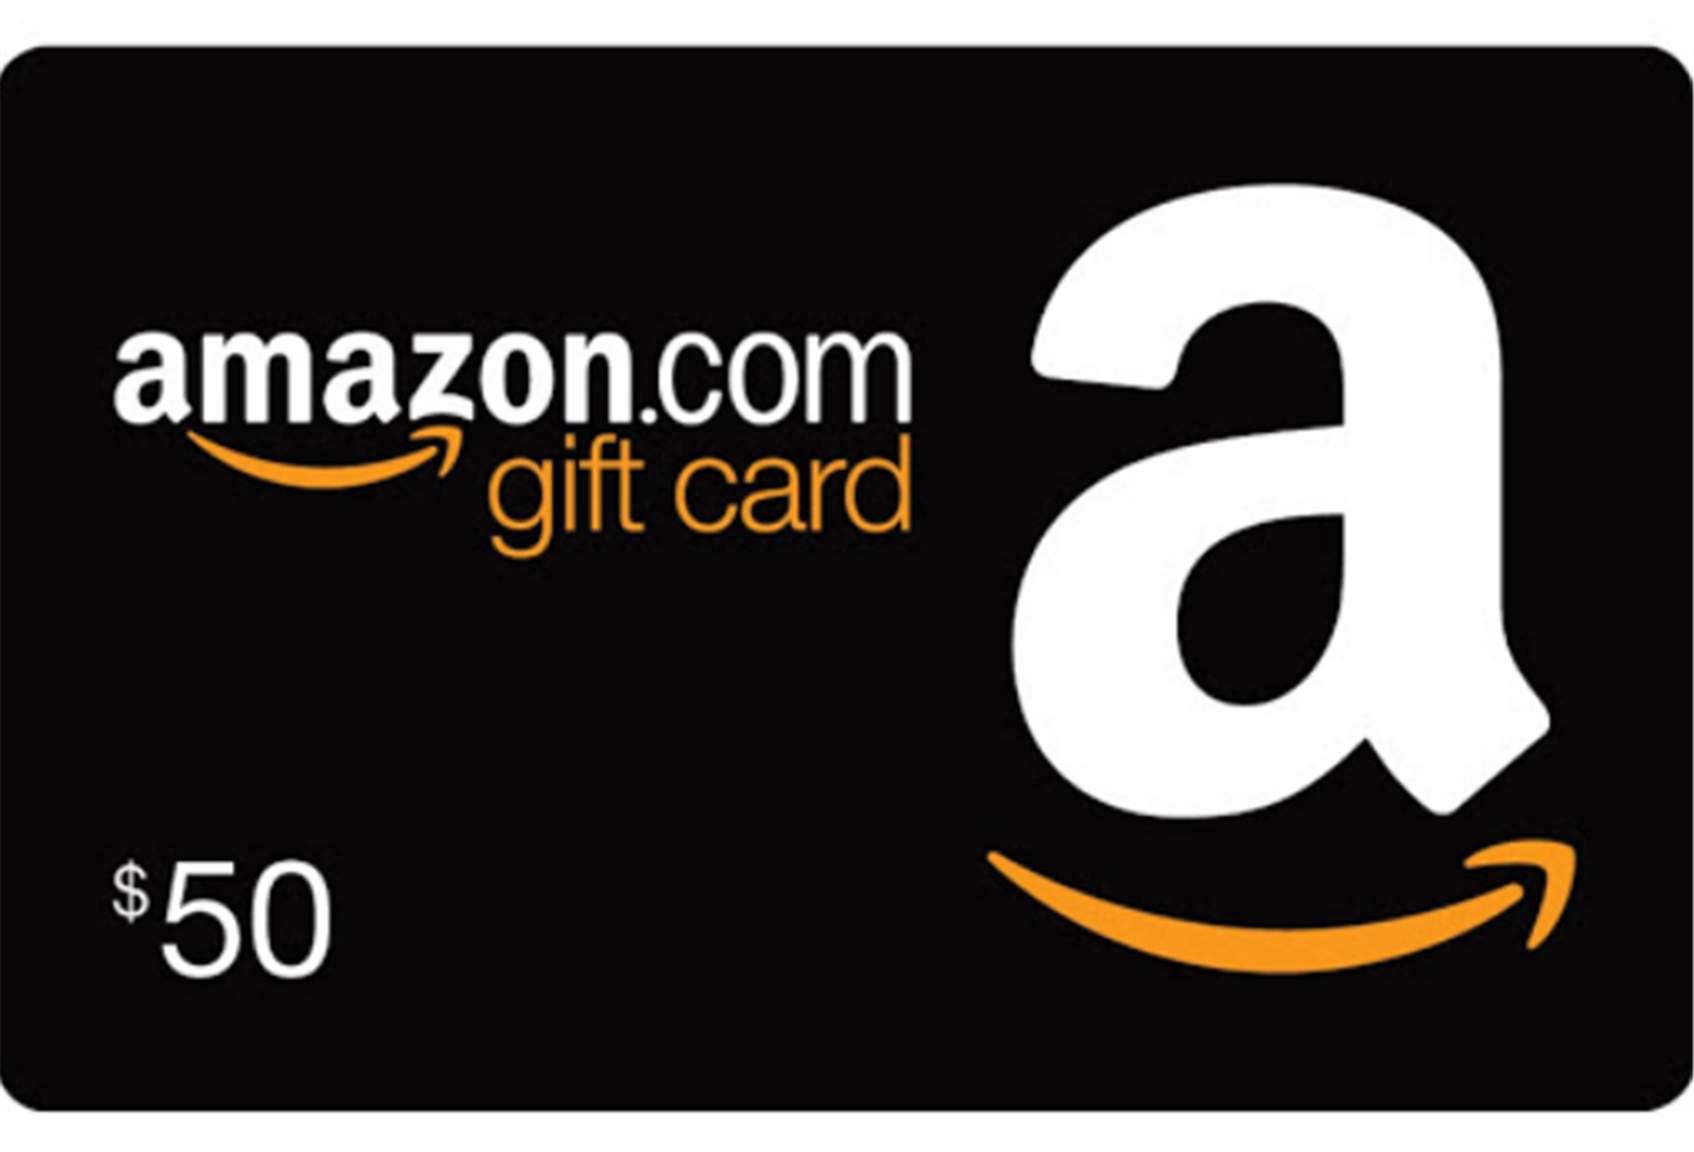 Get a $15 Credit When You Purchase $50 in Amazon Gift Cards